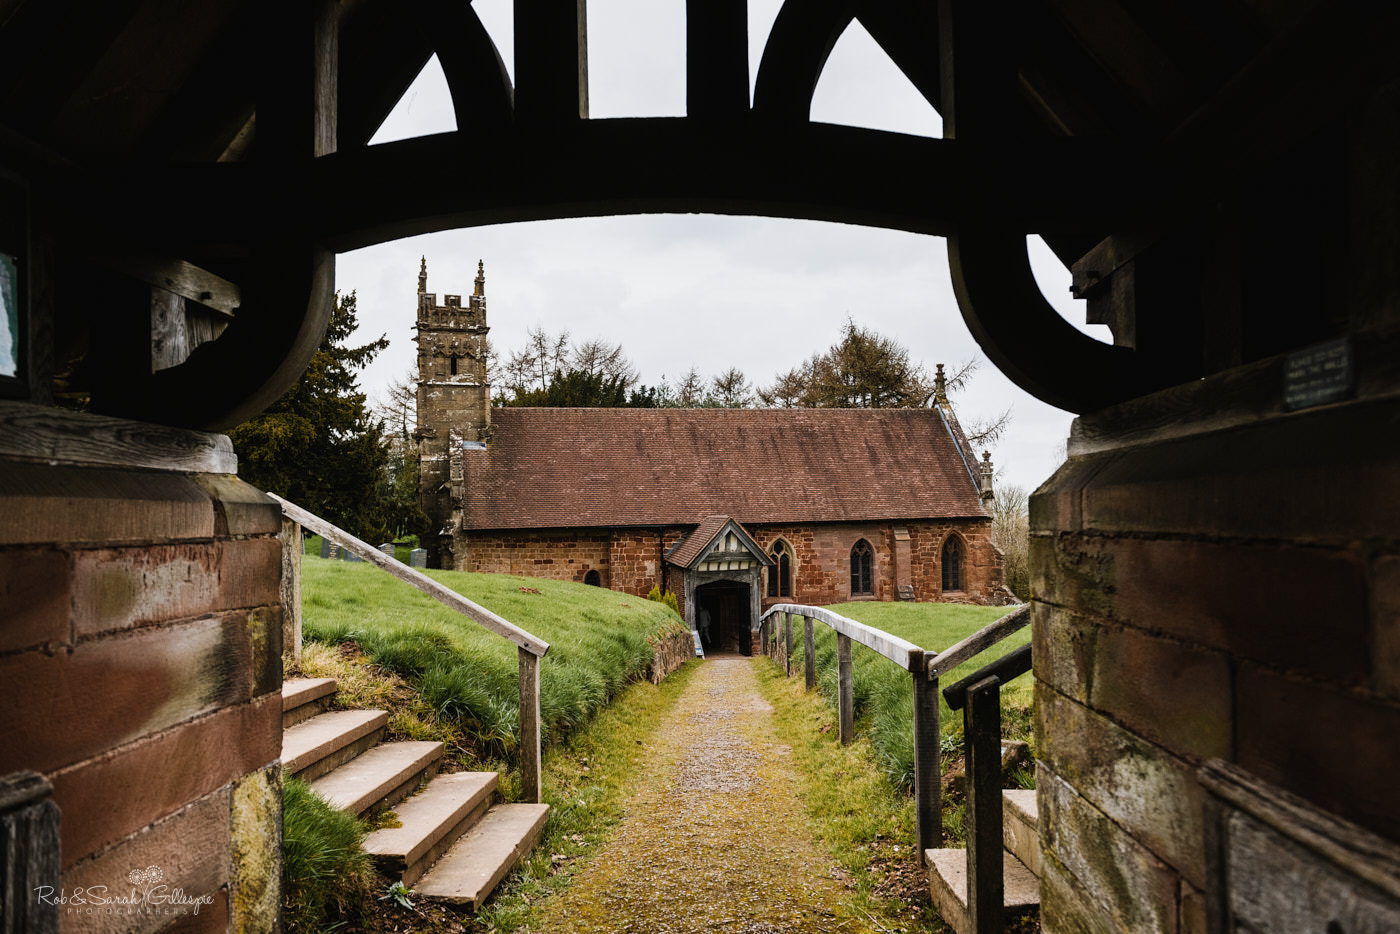 St Kenelm's church in Romsley, Worcestershire